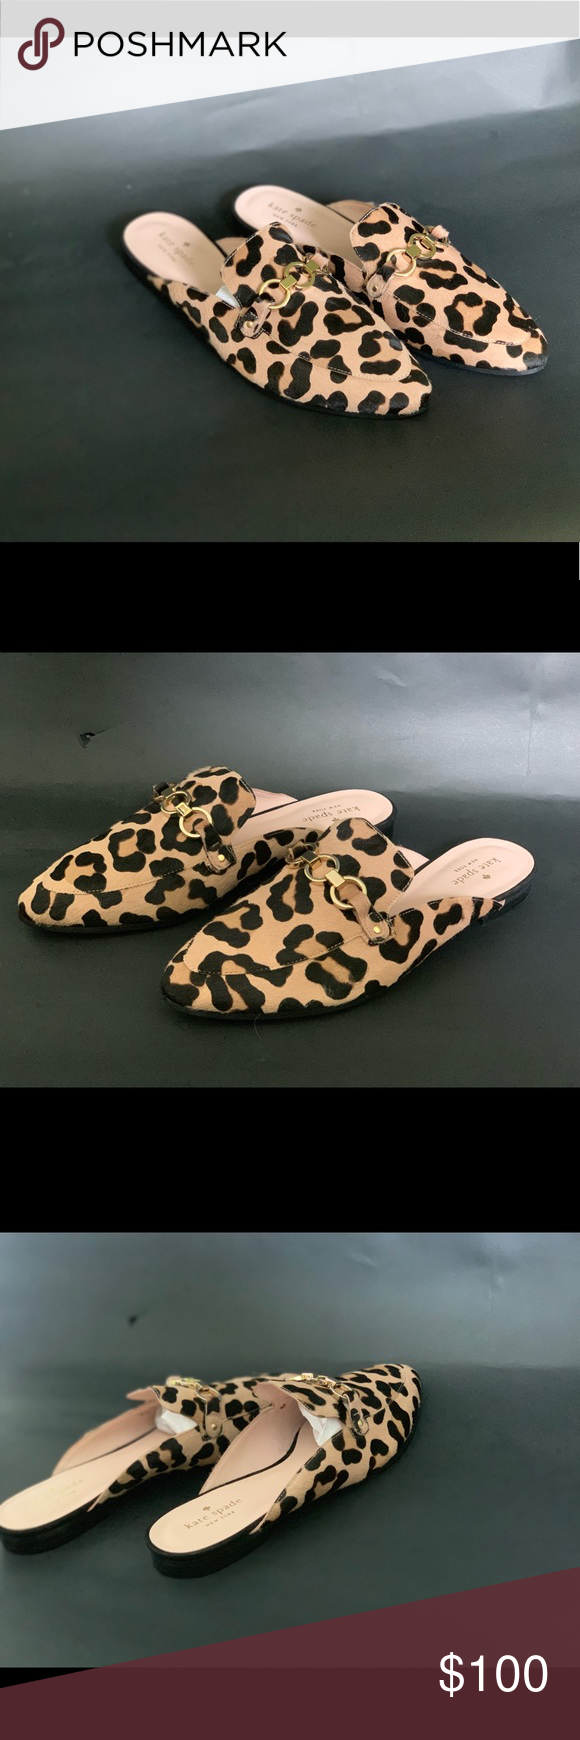 39a44760af2a Kate Spade Leopard Print Loafers Flats Kate Spade Leopard Print Cece Too  Calf Hair Loafers Mules